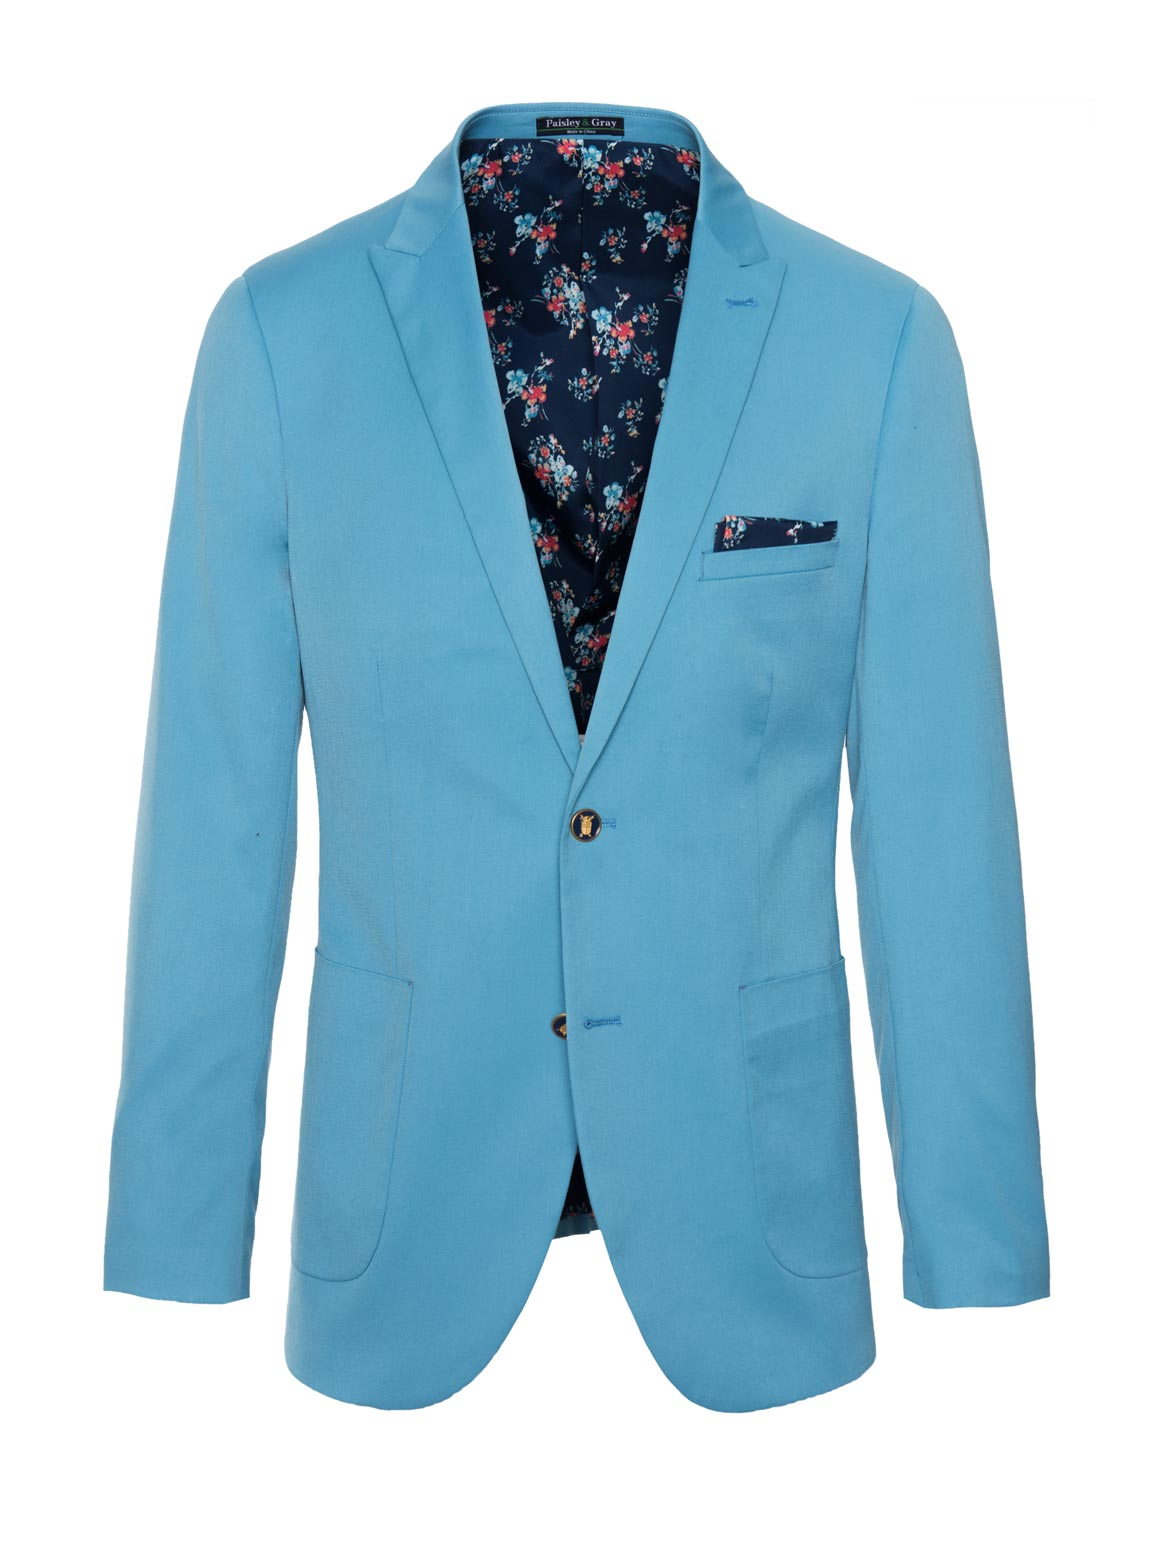 paisley & gray teal solid slim fit peak lapel suit jacket 2123J lustrous indigo floral lining and pocket square teal gingham elbow patches navy plated buttons flap pockets